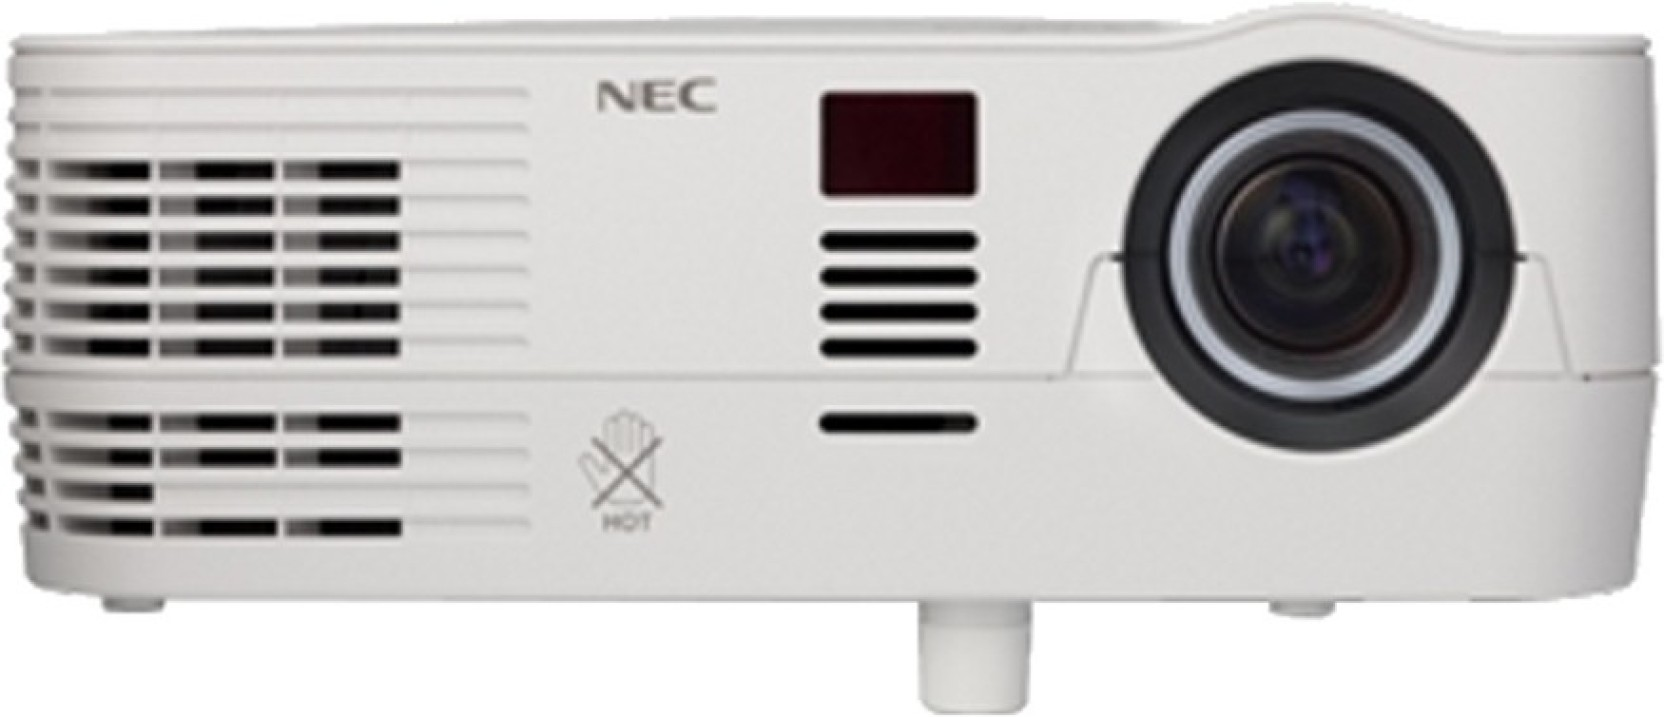 Nec Ve281x Projector Price In India Buy Inverter Air Conditioner Renesas Electronics Share